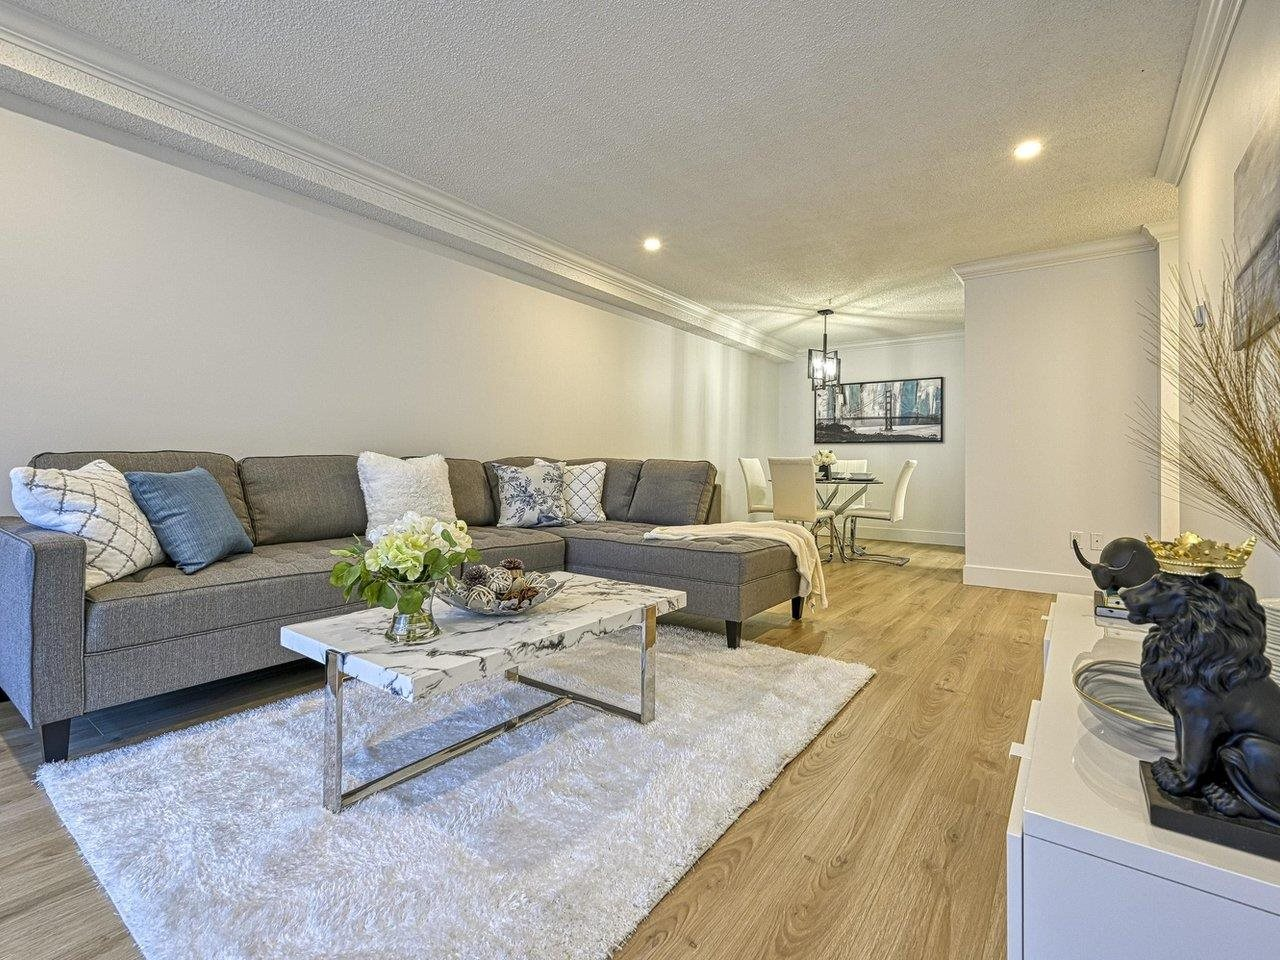 MASSIVE PRIVATE BACKYARD & COMPLETELY RENOVATED!! MOVE-IN ready with amazing renovations throughout. This functional and spacious 2 bedroom floor plan has everything you could ask for! BRAND NEW laminate flooring, luxurious tiles, crown moldings, baseboards, light fixtures and fresh paint! Enjoy a gleaming kitchen with BRAND NEW custom shaker cabinetry, elegant quartz countertops, tile backsplash, stainless steel appliances and tons of extra deep storage & counter space. BONUS: massive ground floor patio with PRIVATE GATE/ACCESS, enjoy the sunshine with your own deck, gardening space and convenient access in and out, perfect for entertaining! This well managed complex boasts amazing amenities, indoor & outdoor pool, hot tub, sauna , recreation/lounge area, and tons of green space.